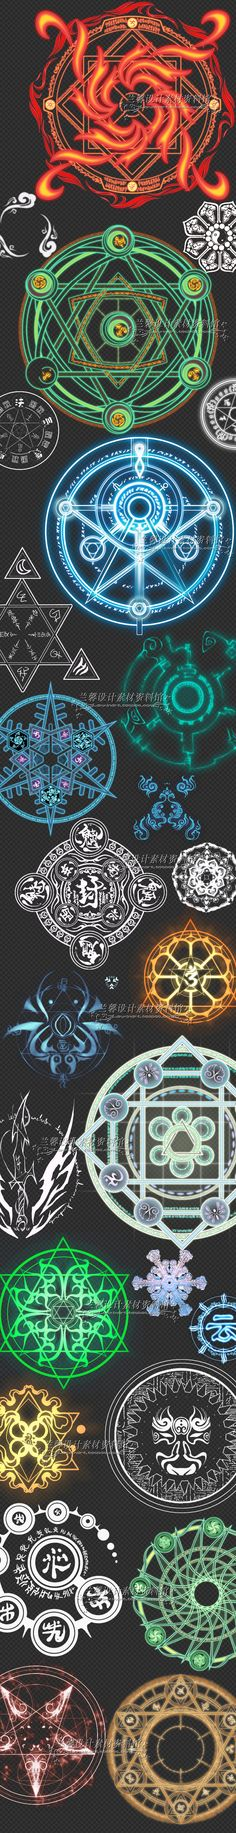 Pure Alchemy Blue one is around the well as a seal Geometry Art, Sacred Geometry, Symbole Viking, Full Metal Alchemist, Magic Symbols, Magic Circle, Book Of Shadows, Wiccan, Fantasy Art